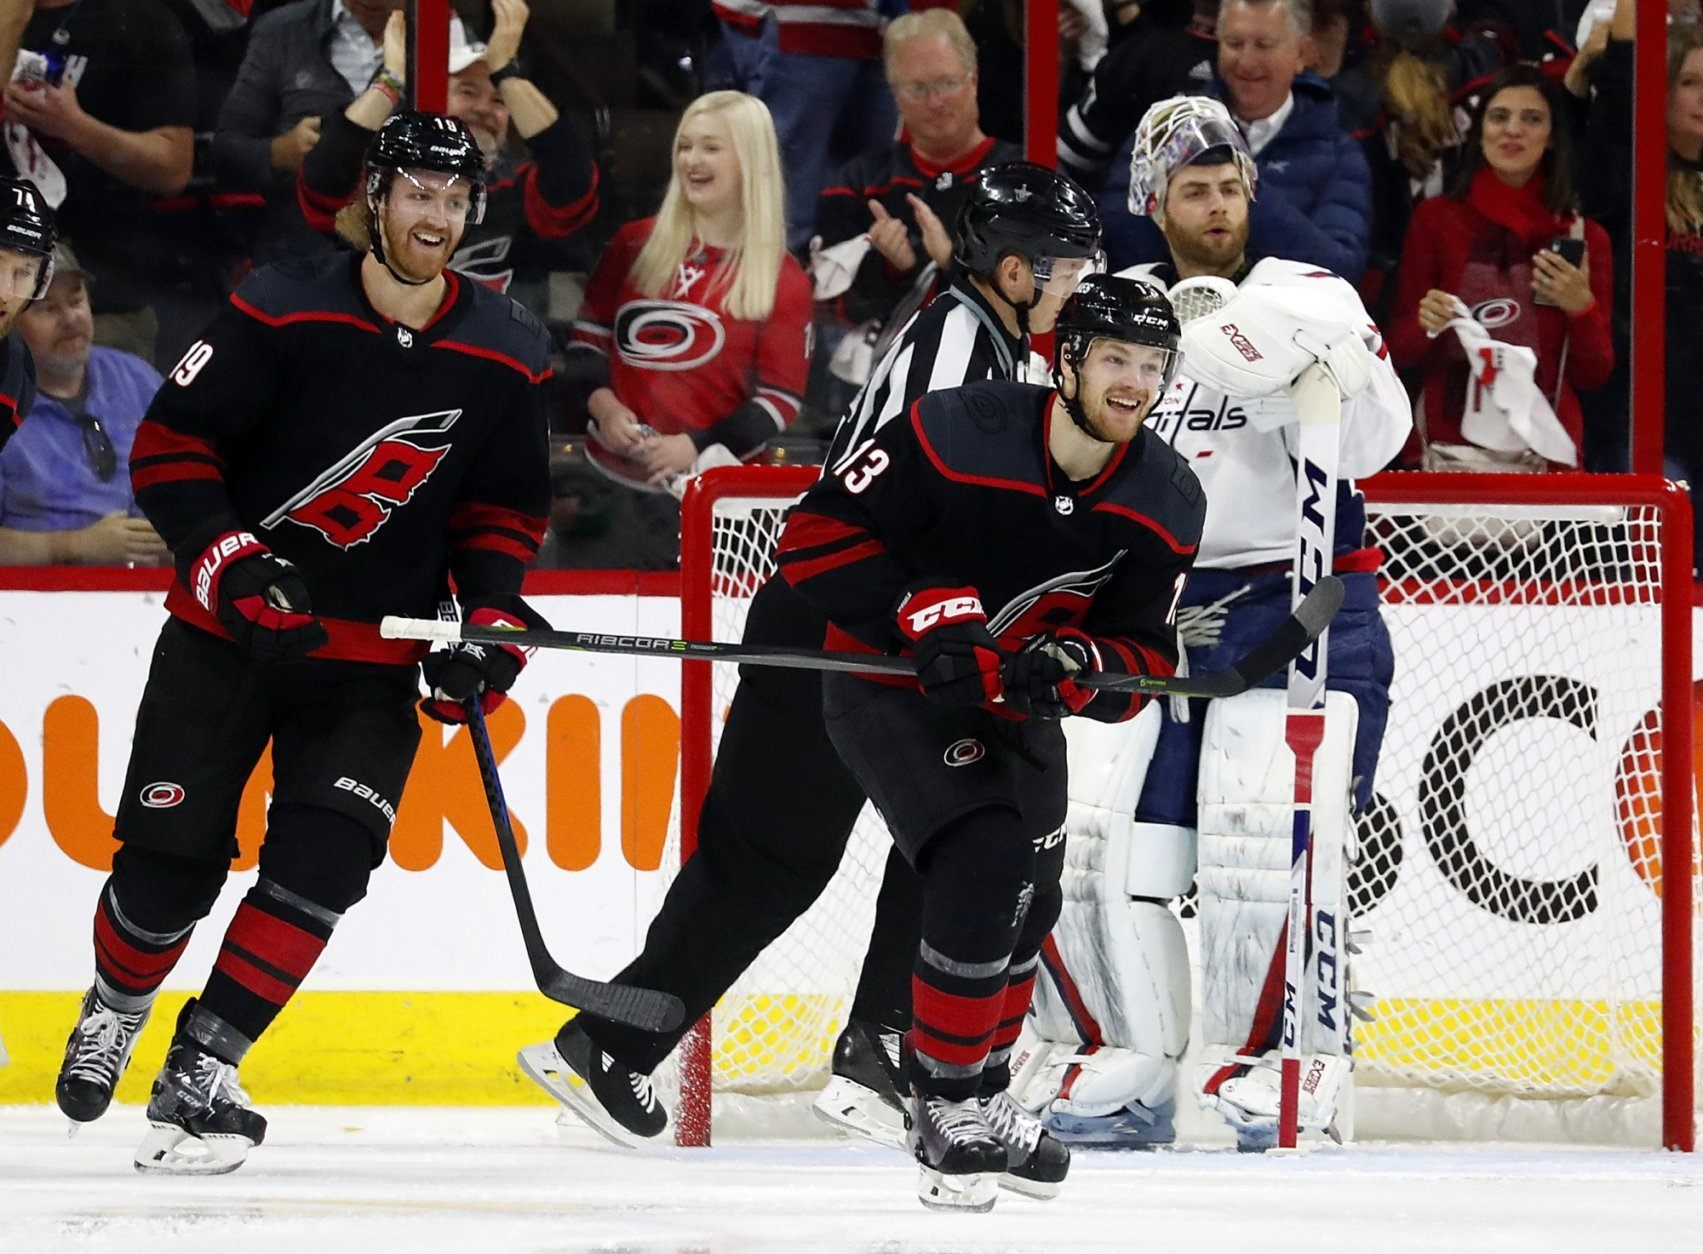 Carolina Hurricanes' Warren Foegele (13) celebrates his goal with Dougie Hamilton (19) nearby during the first period of Game 4 of the team's NHL hockey first-round playoff series against the Washington Capitals in Raleigh, N.C, Thursday, April 18, 2019, (AP Photo/Karl B DeBlaker)